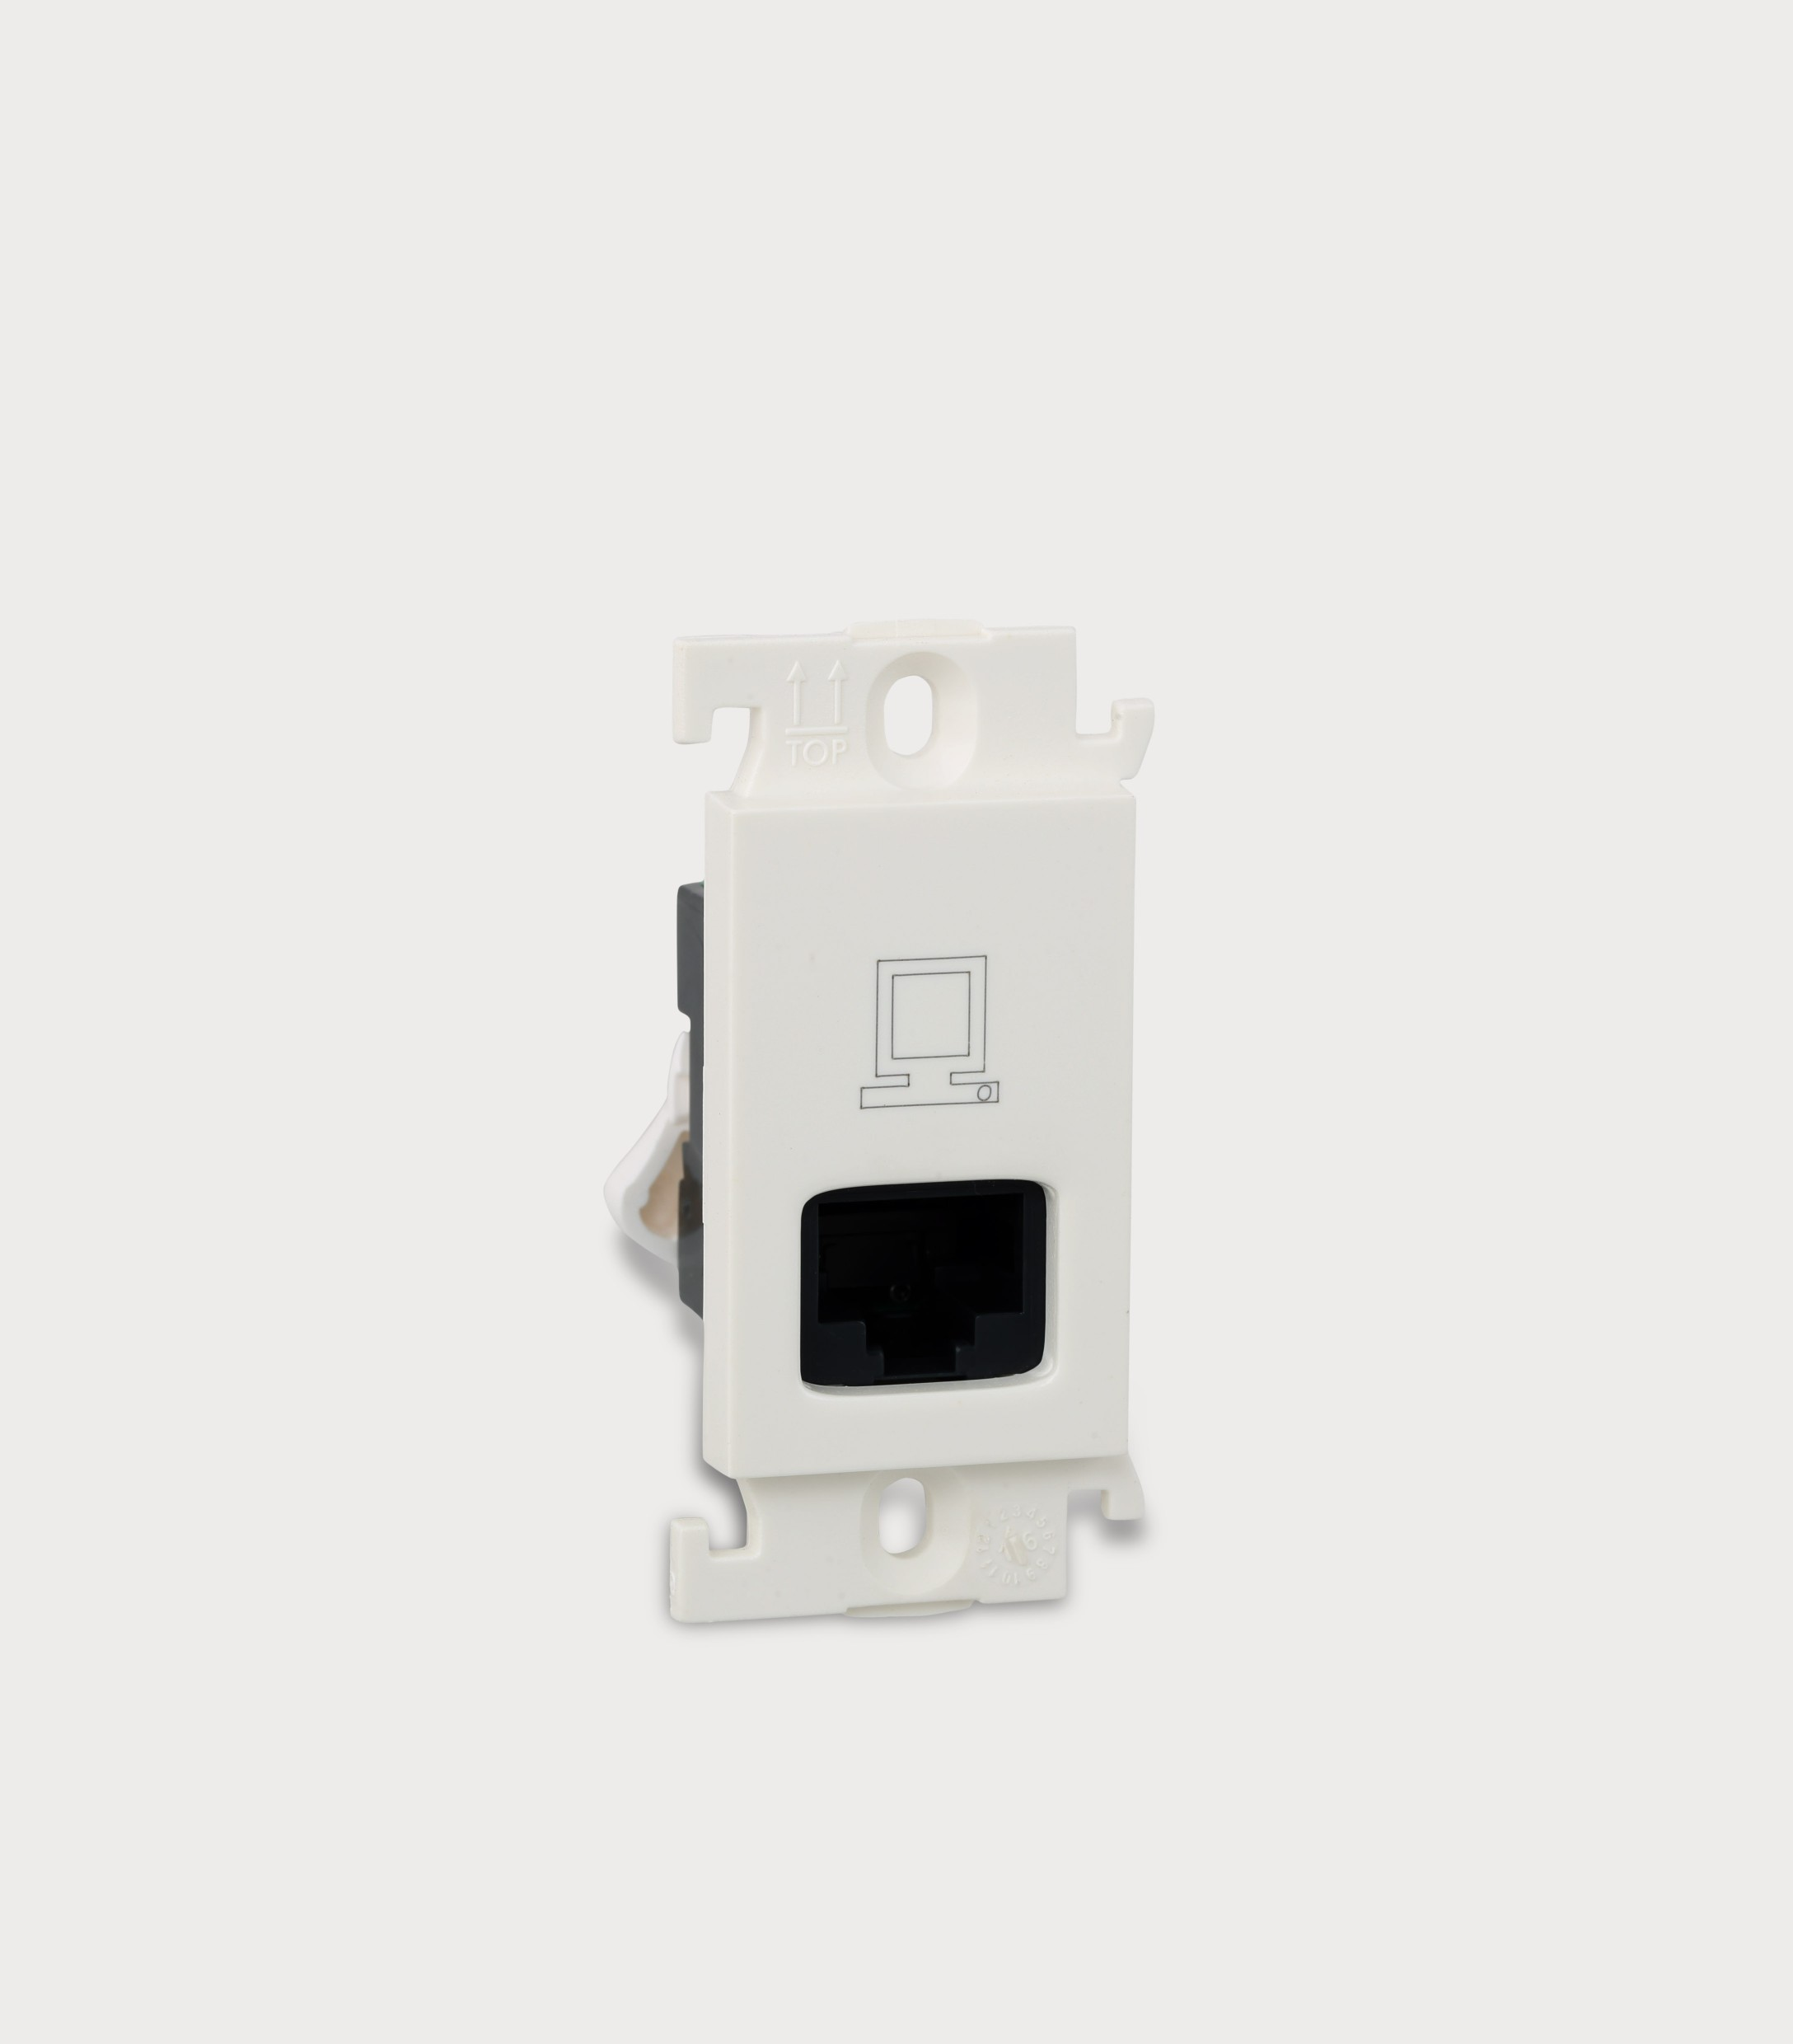 25A 1 Module Switch with Indicator (White) 675968 - Electrical and ...